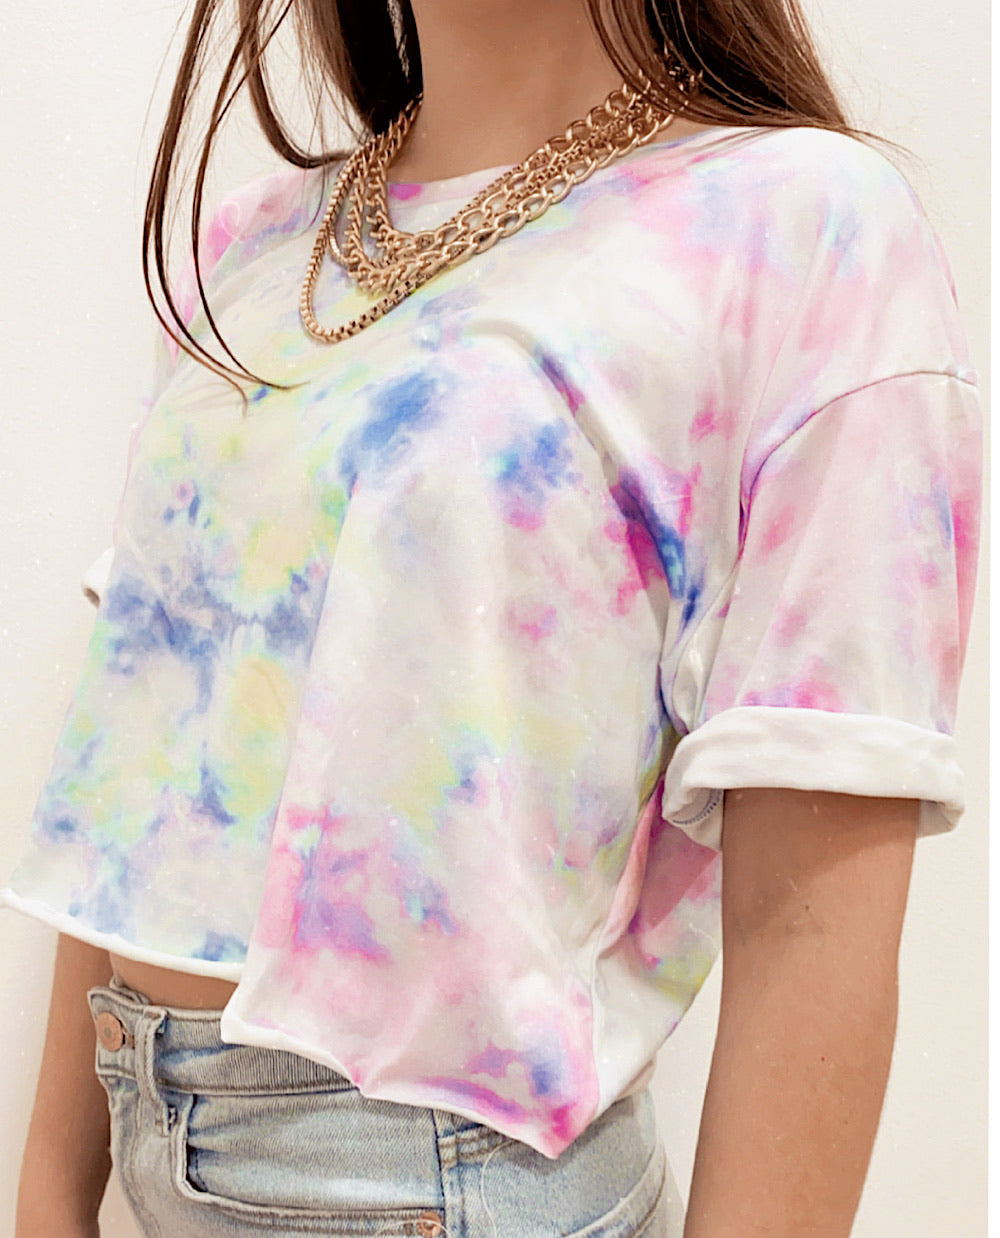 BASIC TOP TIE DYE - WILD SPIRIT